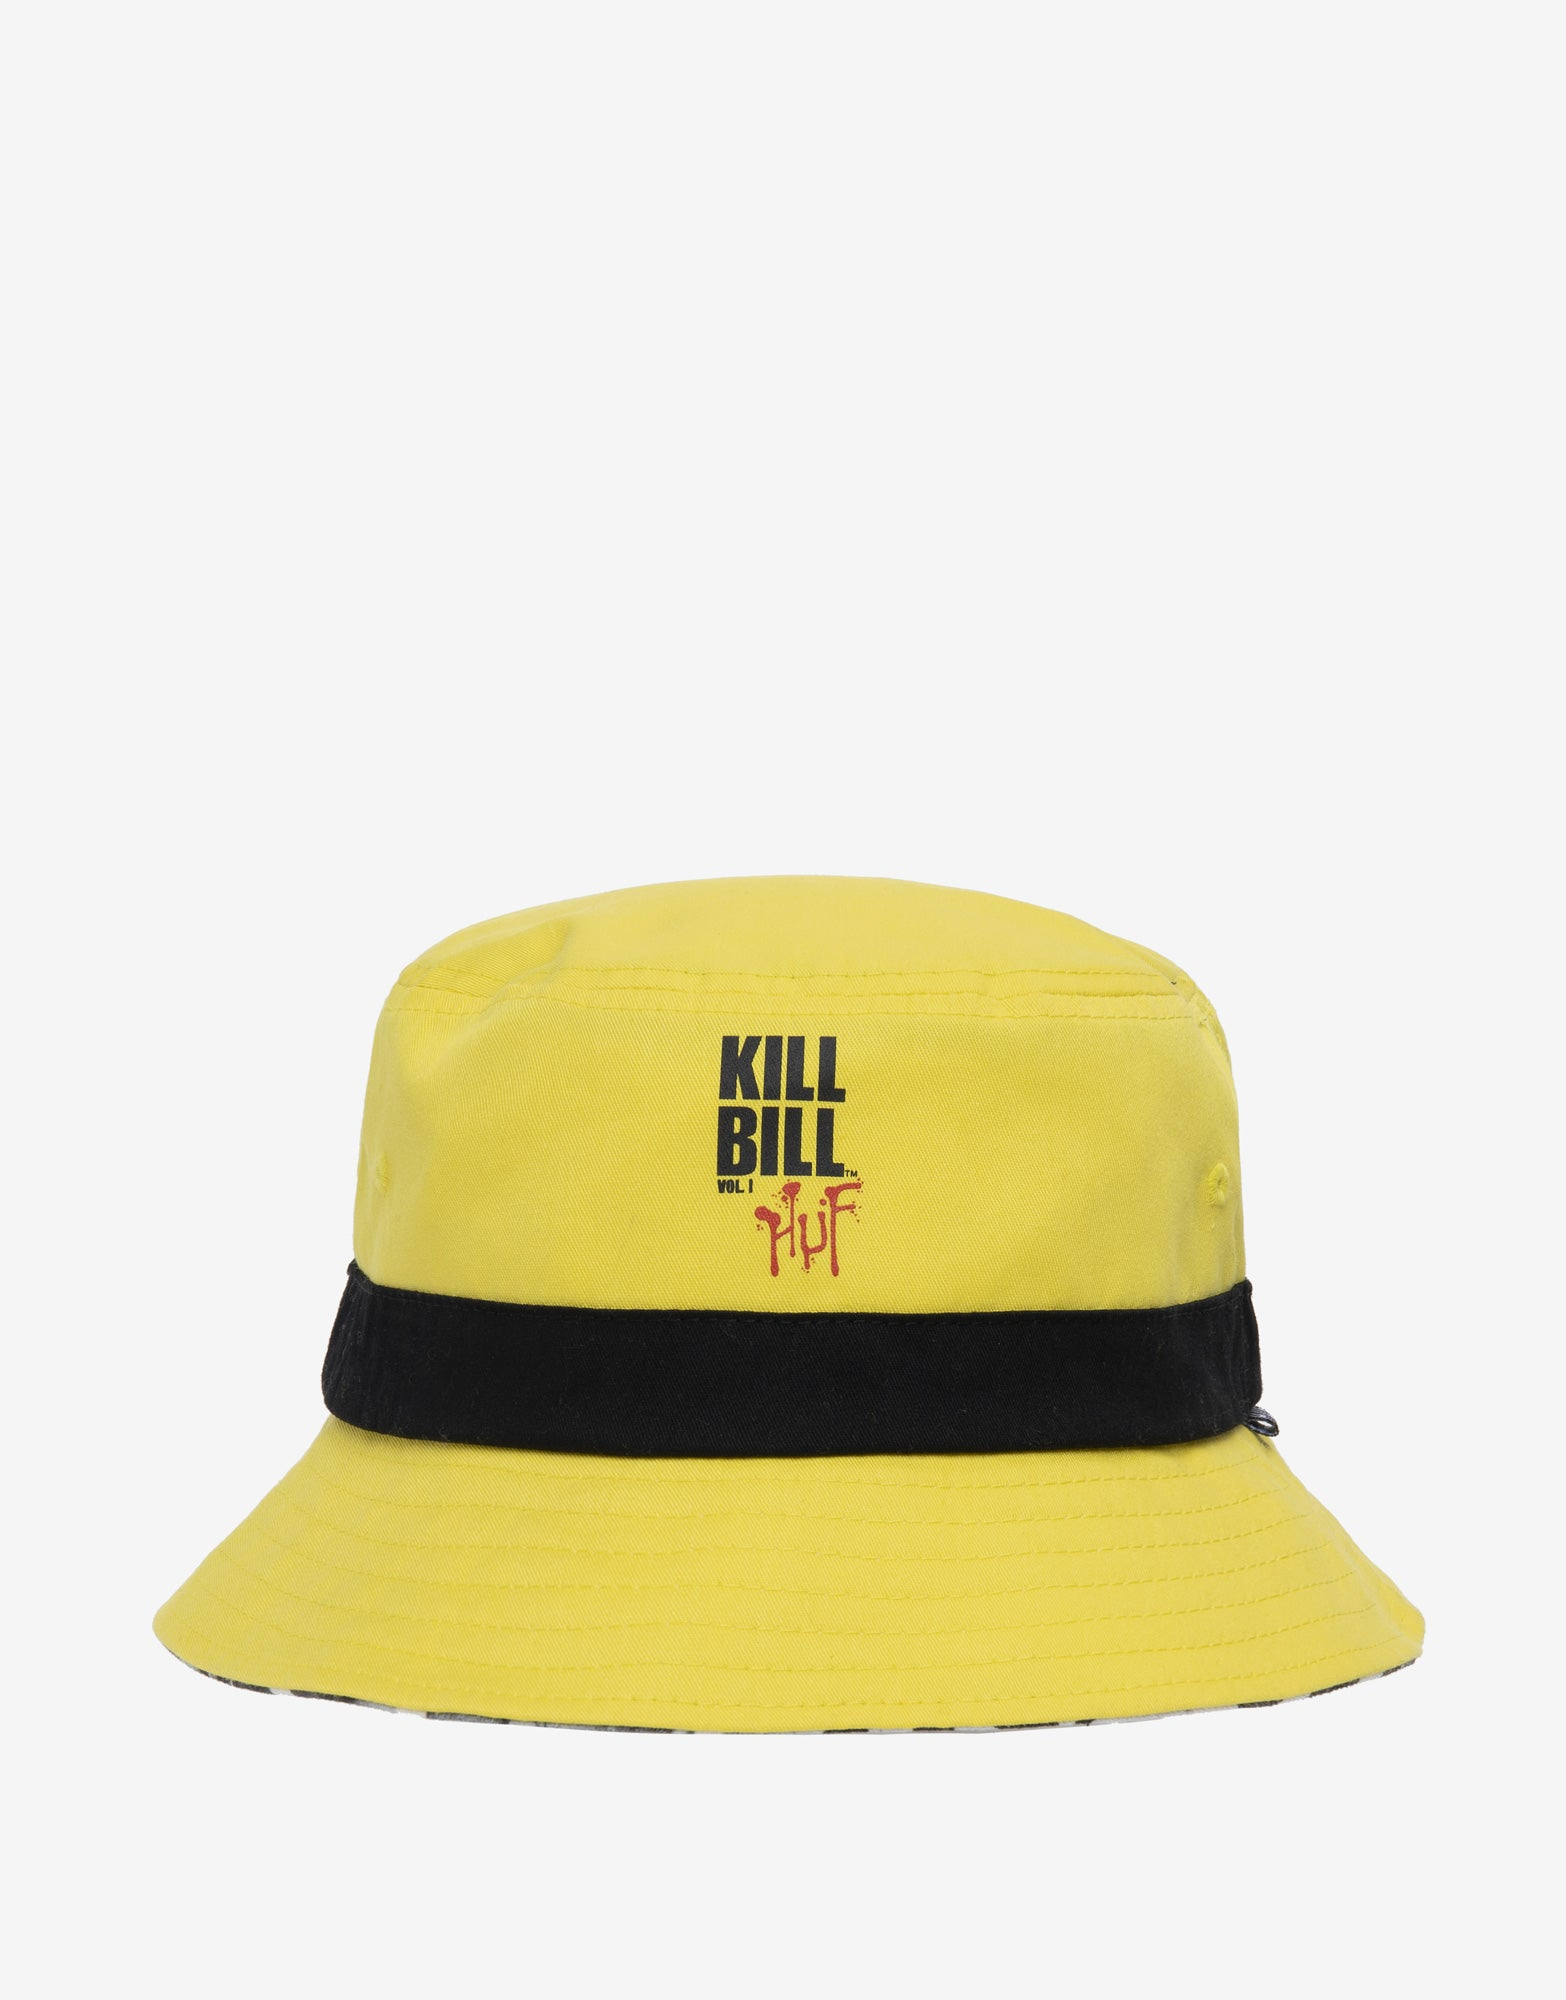 HUF x Kill Bill Reversible Bucket Hat - Yellow